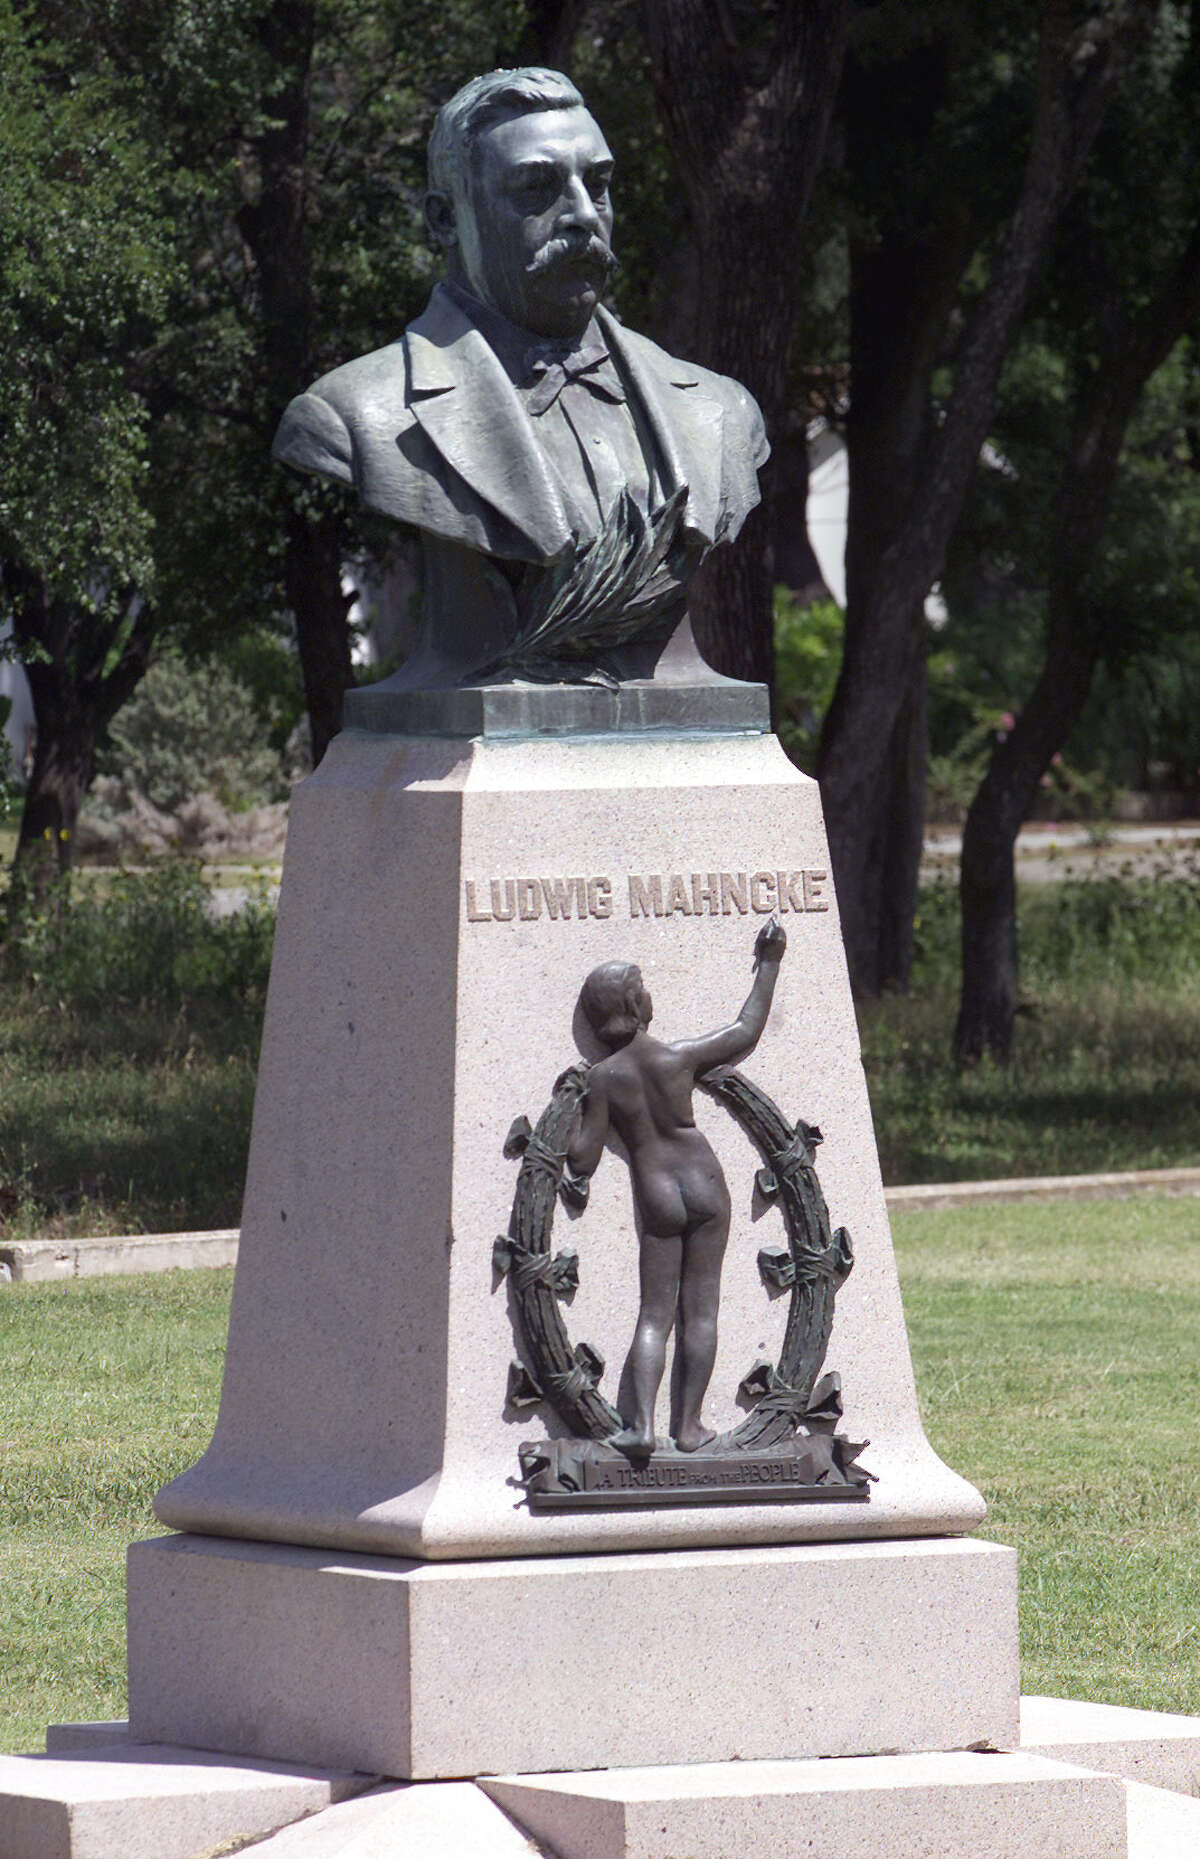 A little over a hundred years ago, George W. Brackenridge, who owned and sold the city's Water Works Company, donated land for a park. He asked his friend Ludwig Mahncke to make improvements. After Mahncke died, the parked was named in his honor and this monument was erected.Source: mahnckepark.org